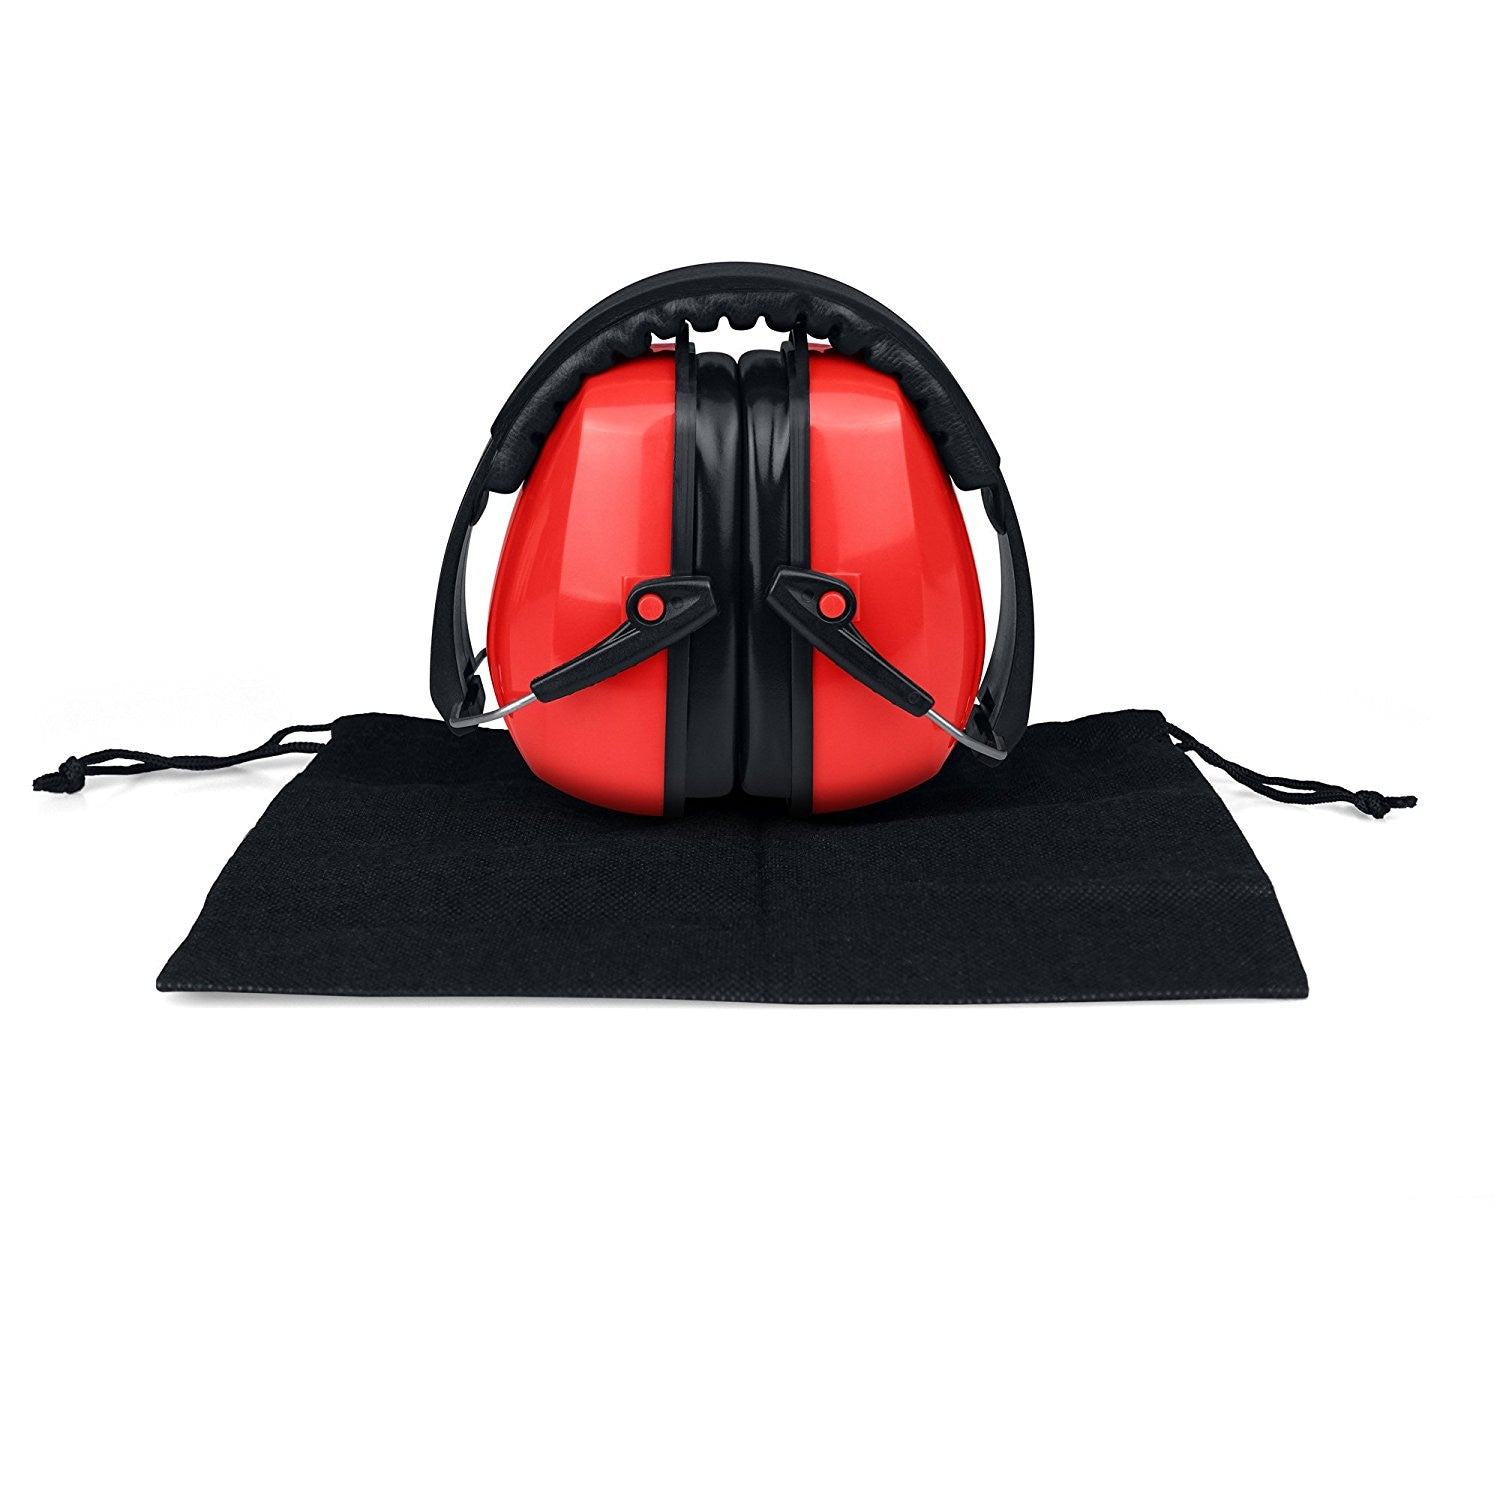 Safety Ear Muffs Adjustable Adult Size Noise Canceling Ear Hearing Protection Red